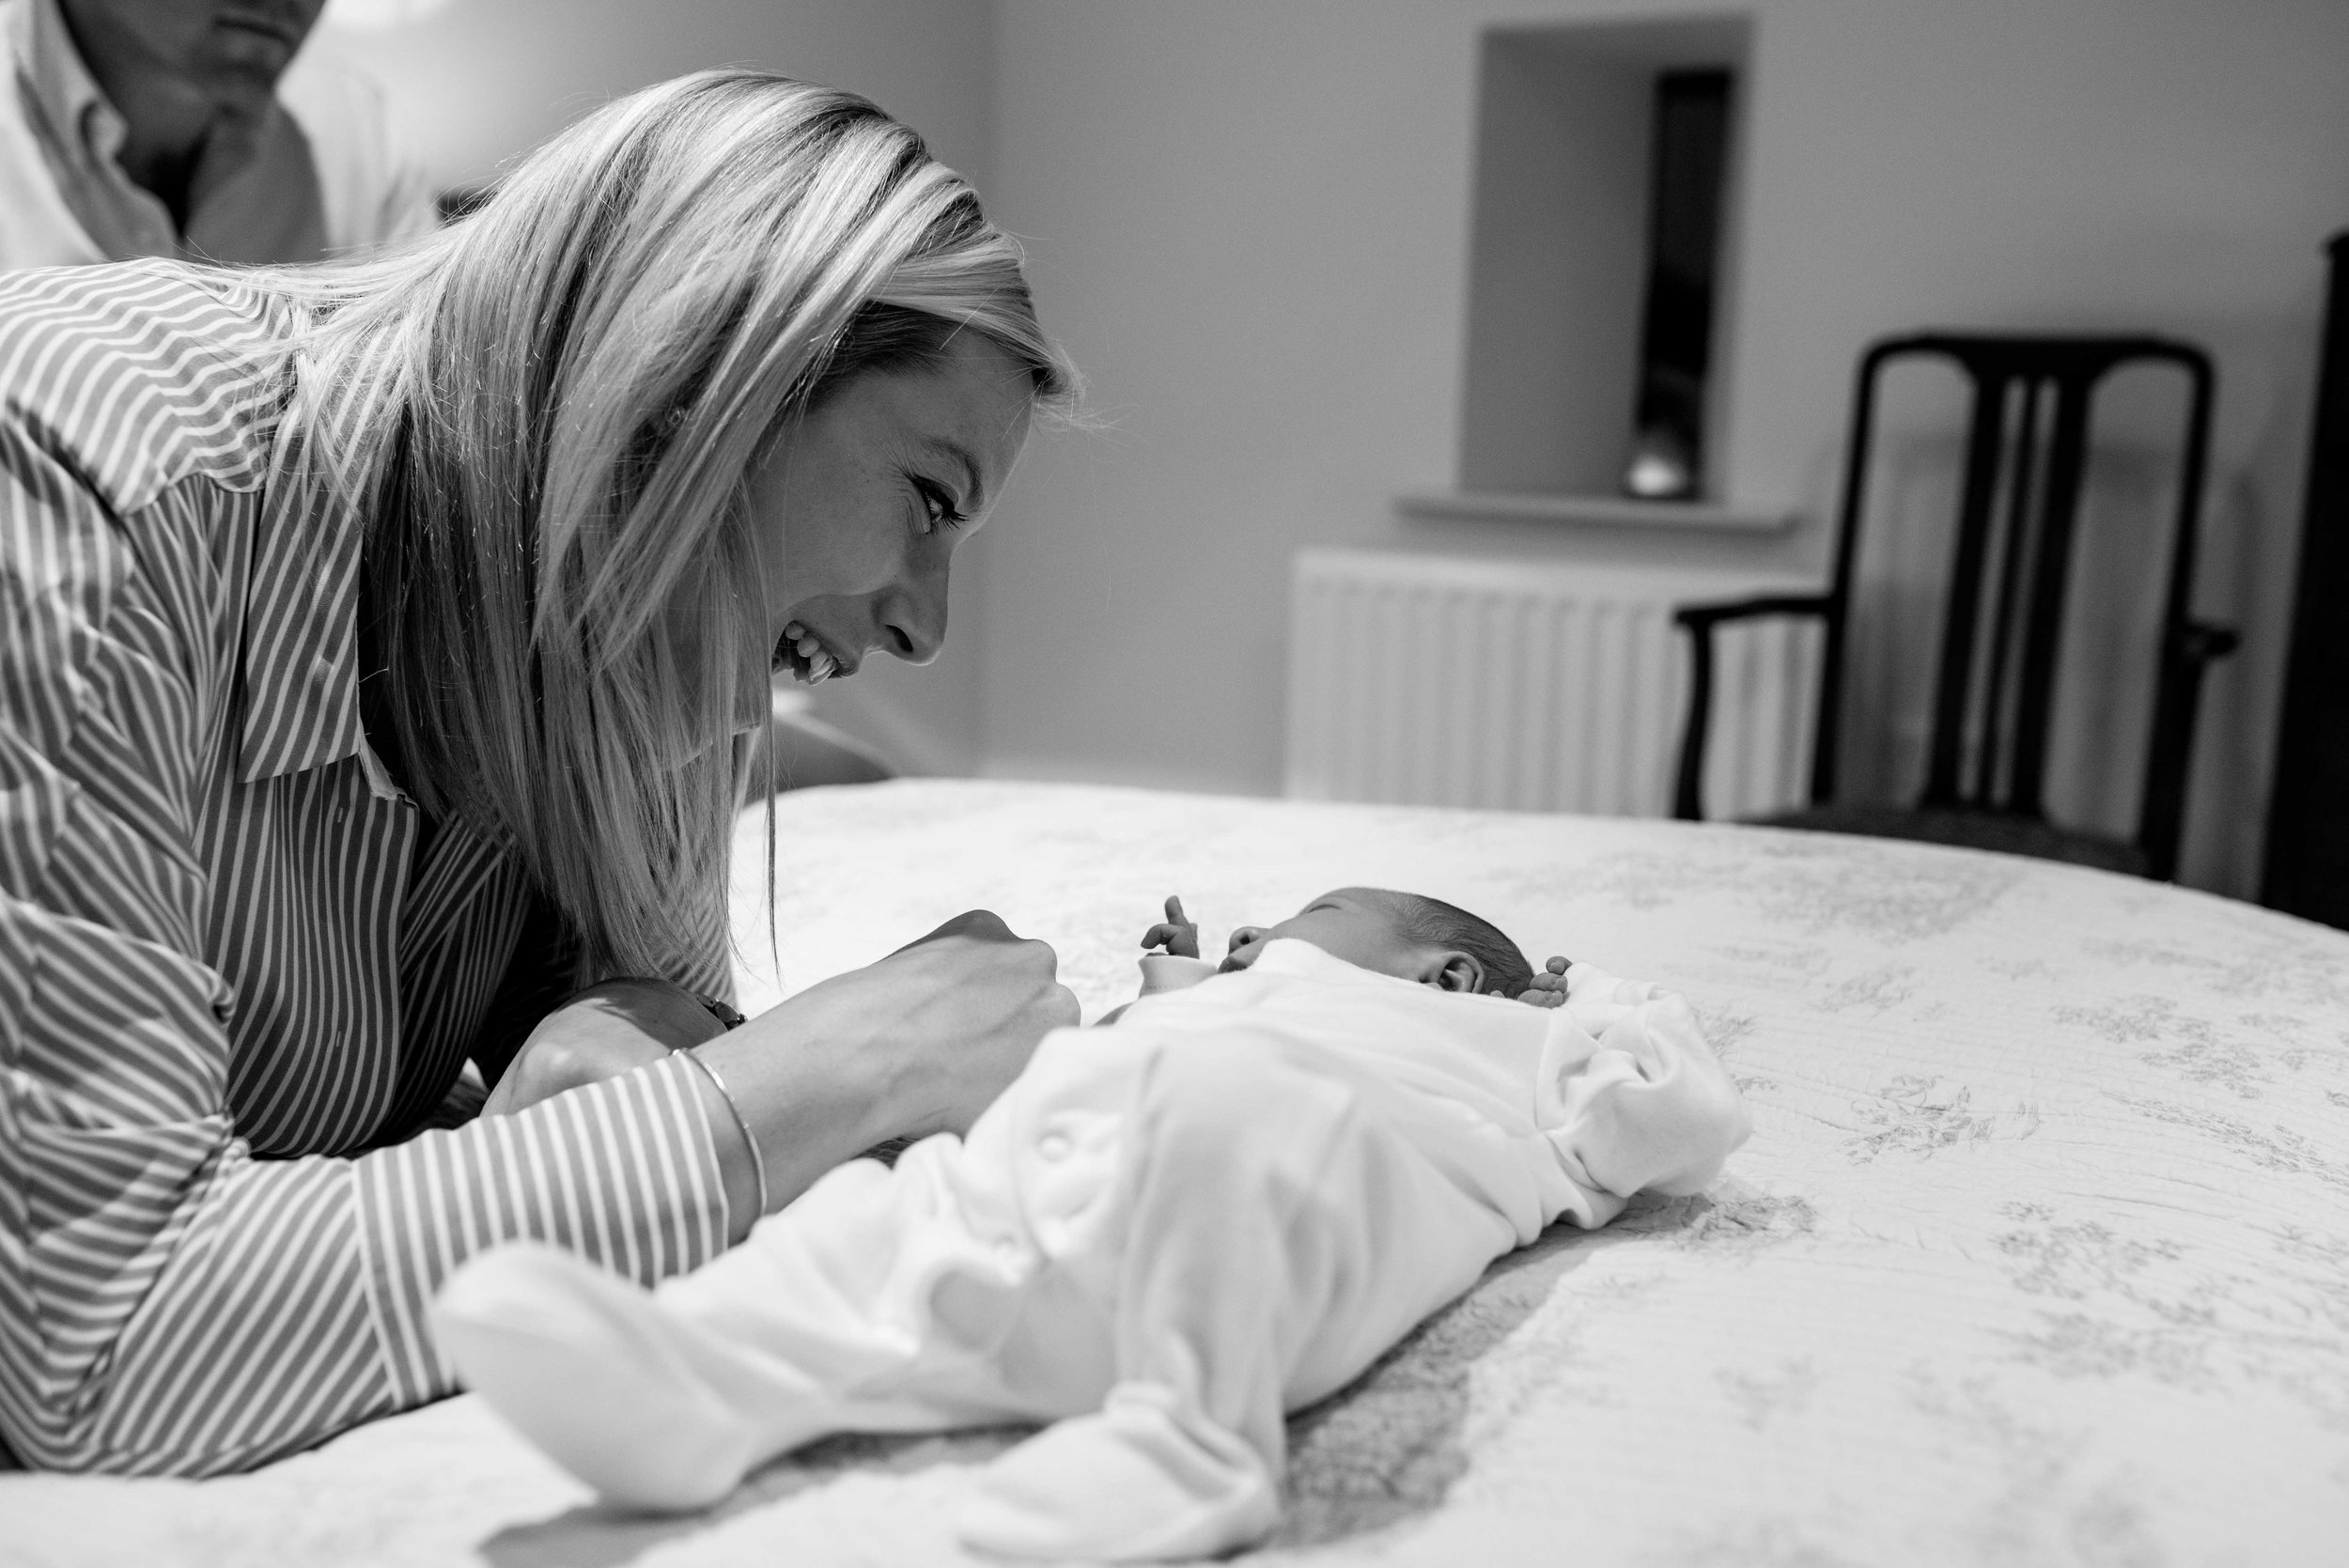 New mum Chloe plays with her newborn son as he lies on the bed.